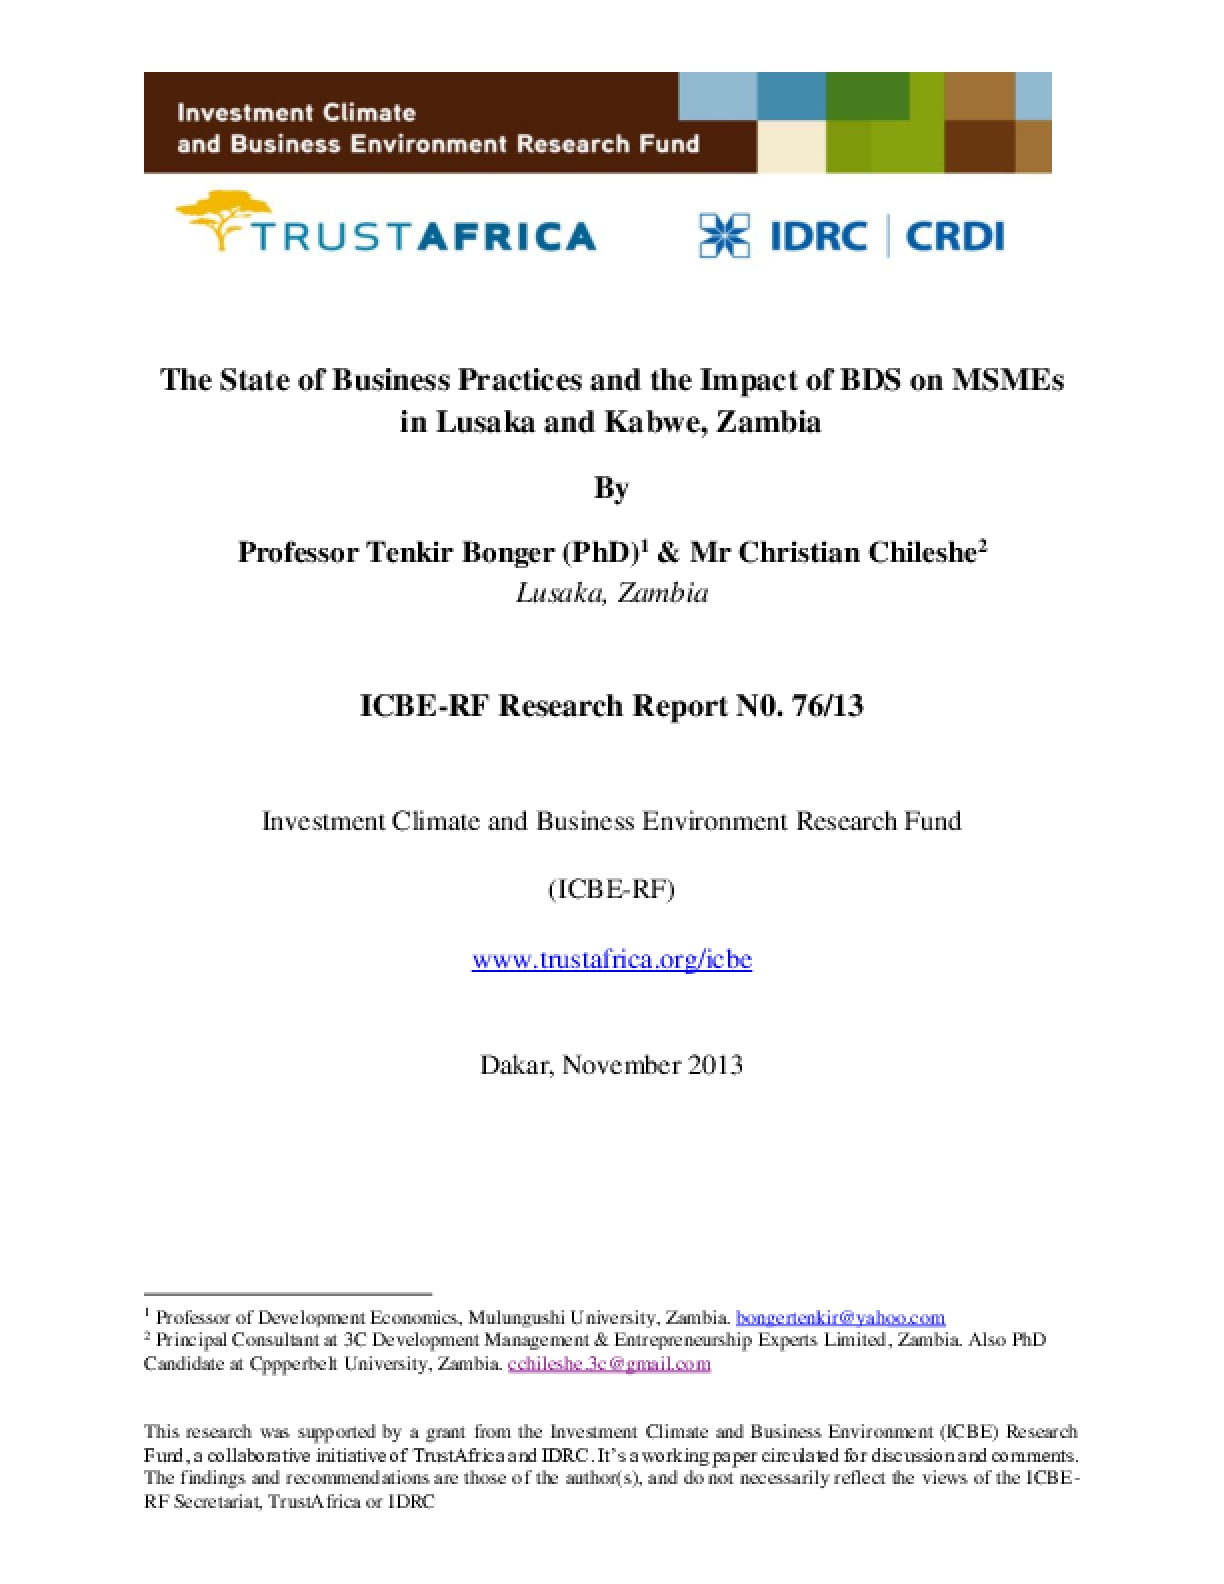 The State of Business Practices and the Impact of BDS on MSMEs in Lusaka and Kabwe, Zambia